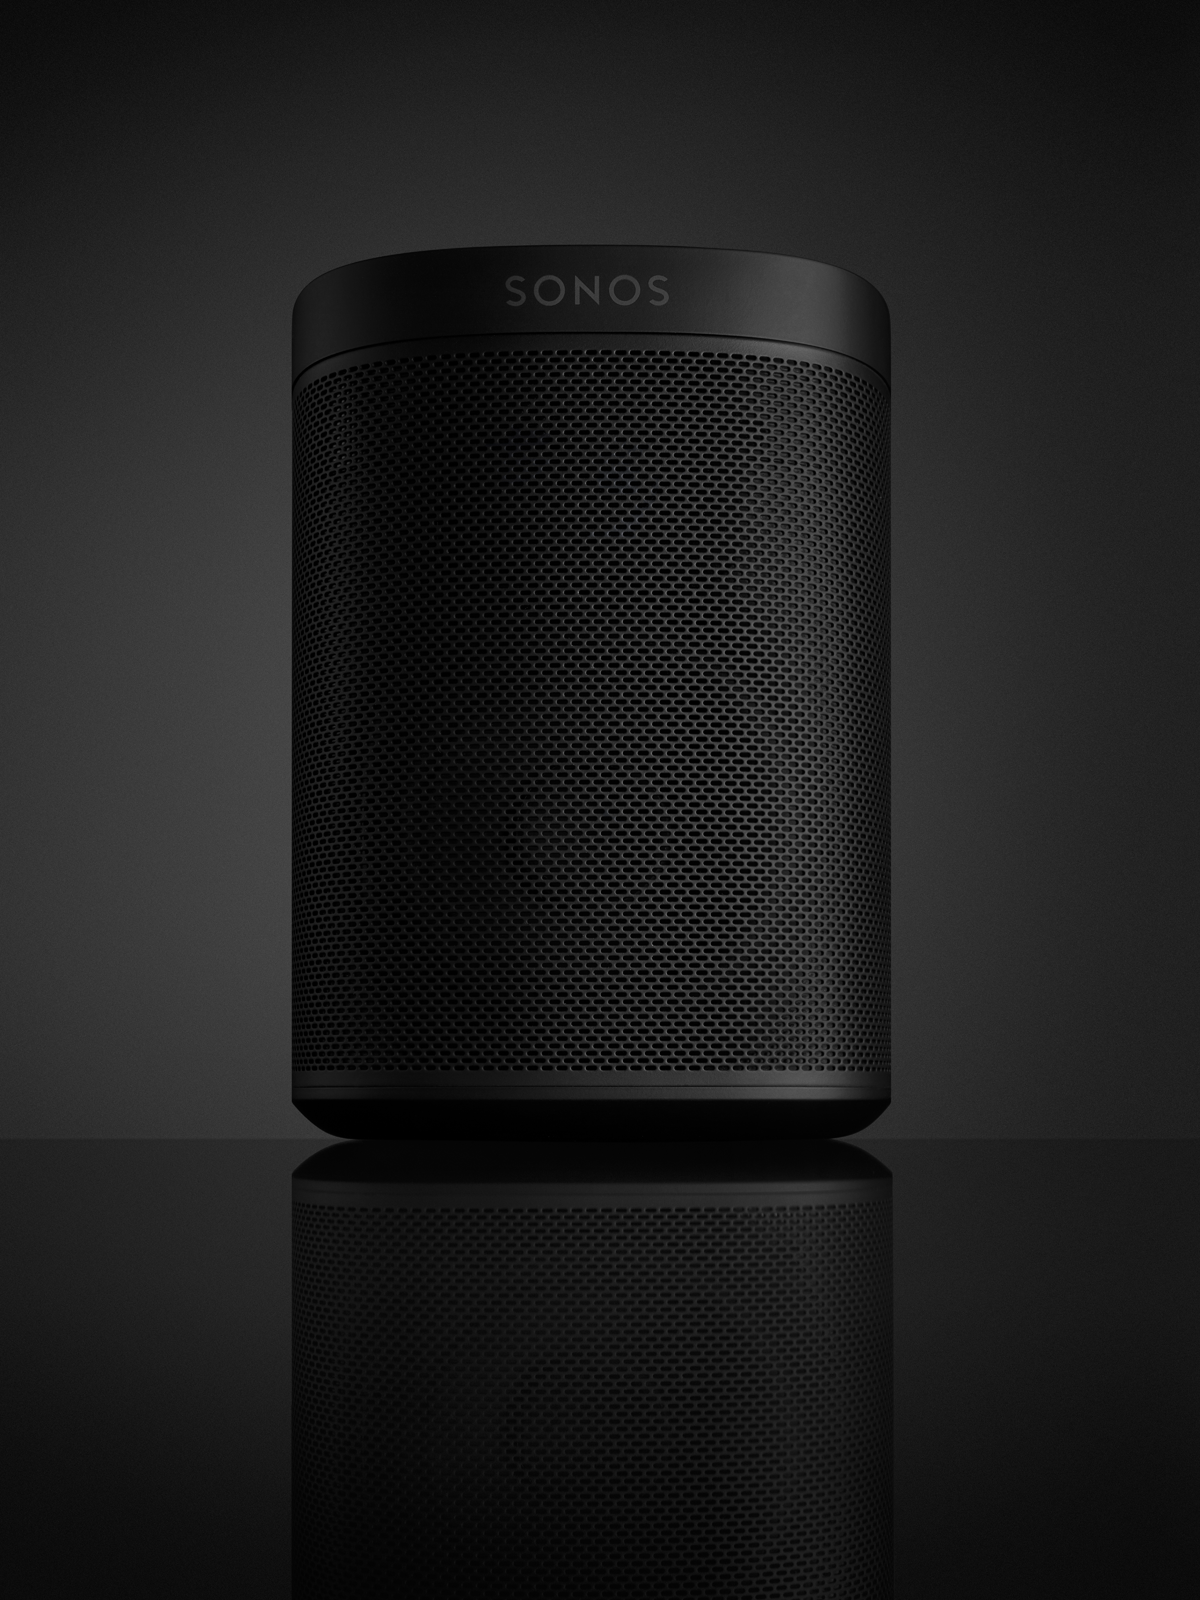 enceinte sonos play 1 tone couleur noir. Black Bedroom Furniture Sets. Home Design Ideas